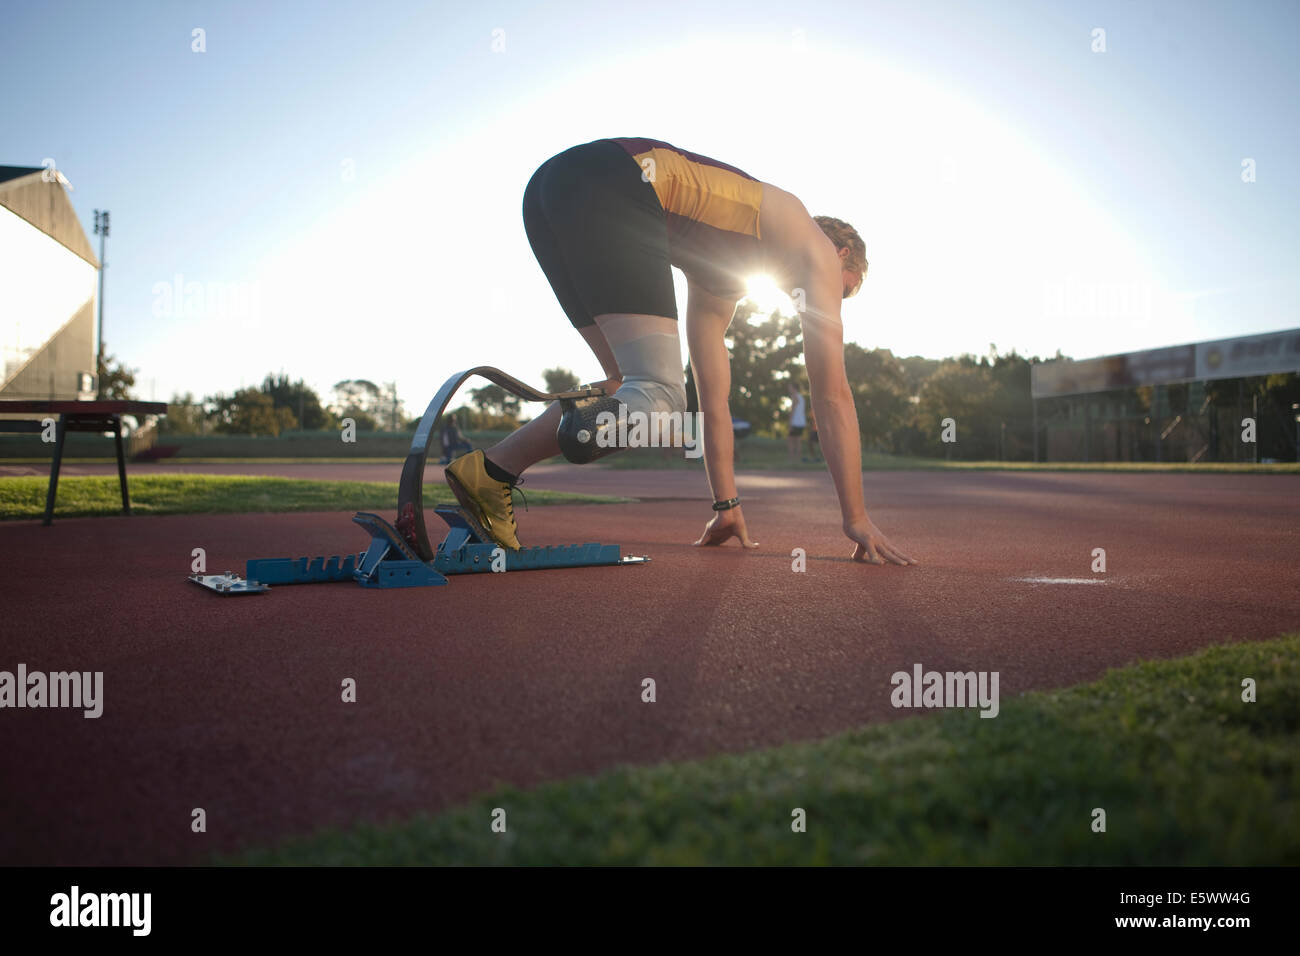 Sprinter in Startposition Stockbild